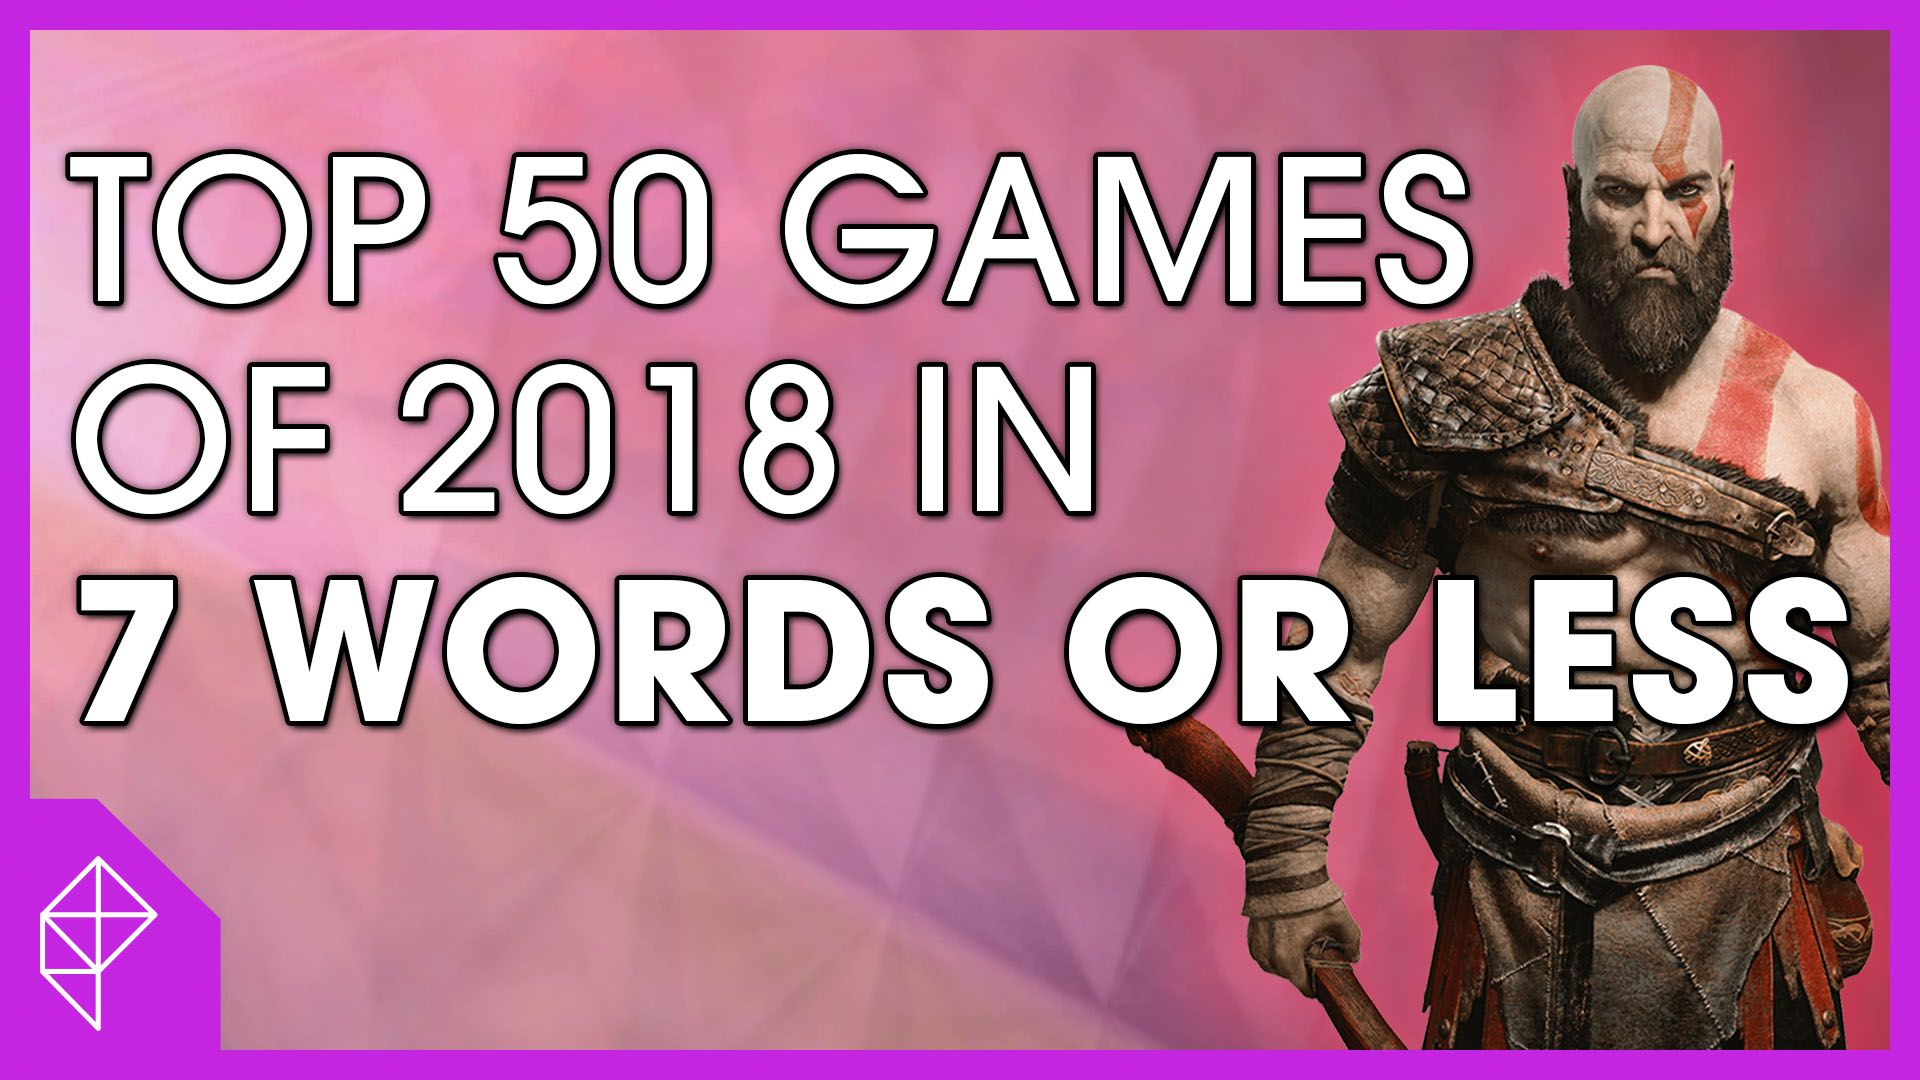 Best games of 2018: The top 50 games of the year - Polygon